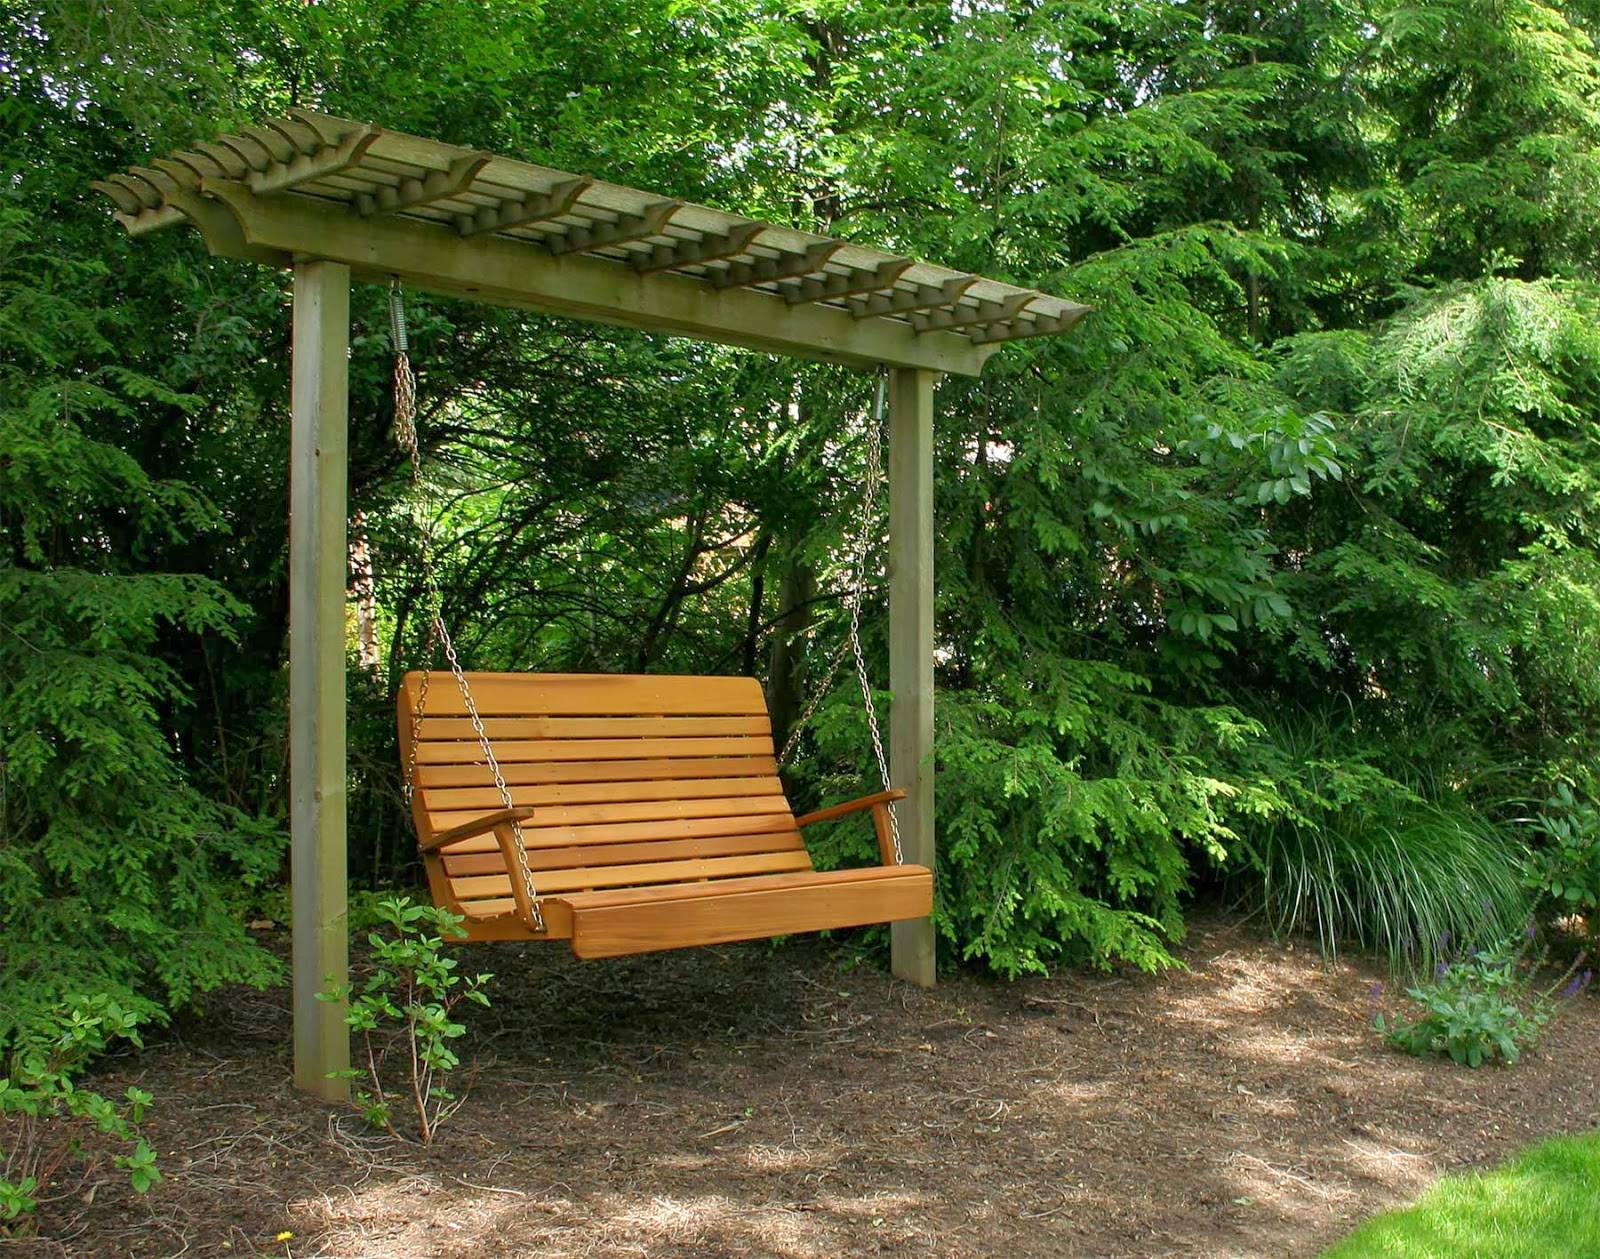 A wooden swing inside a bushy garden